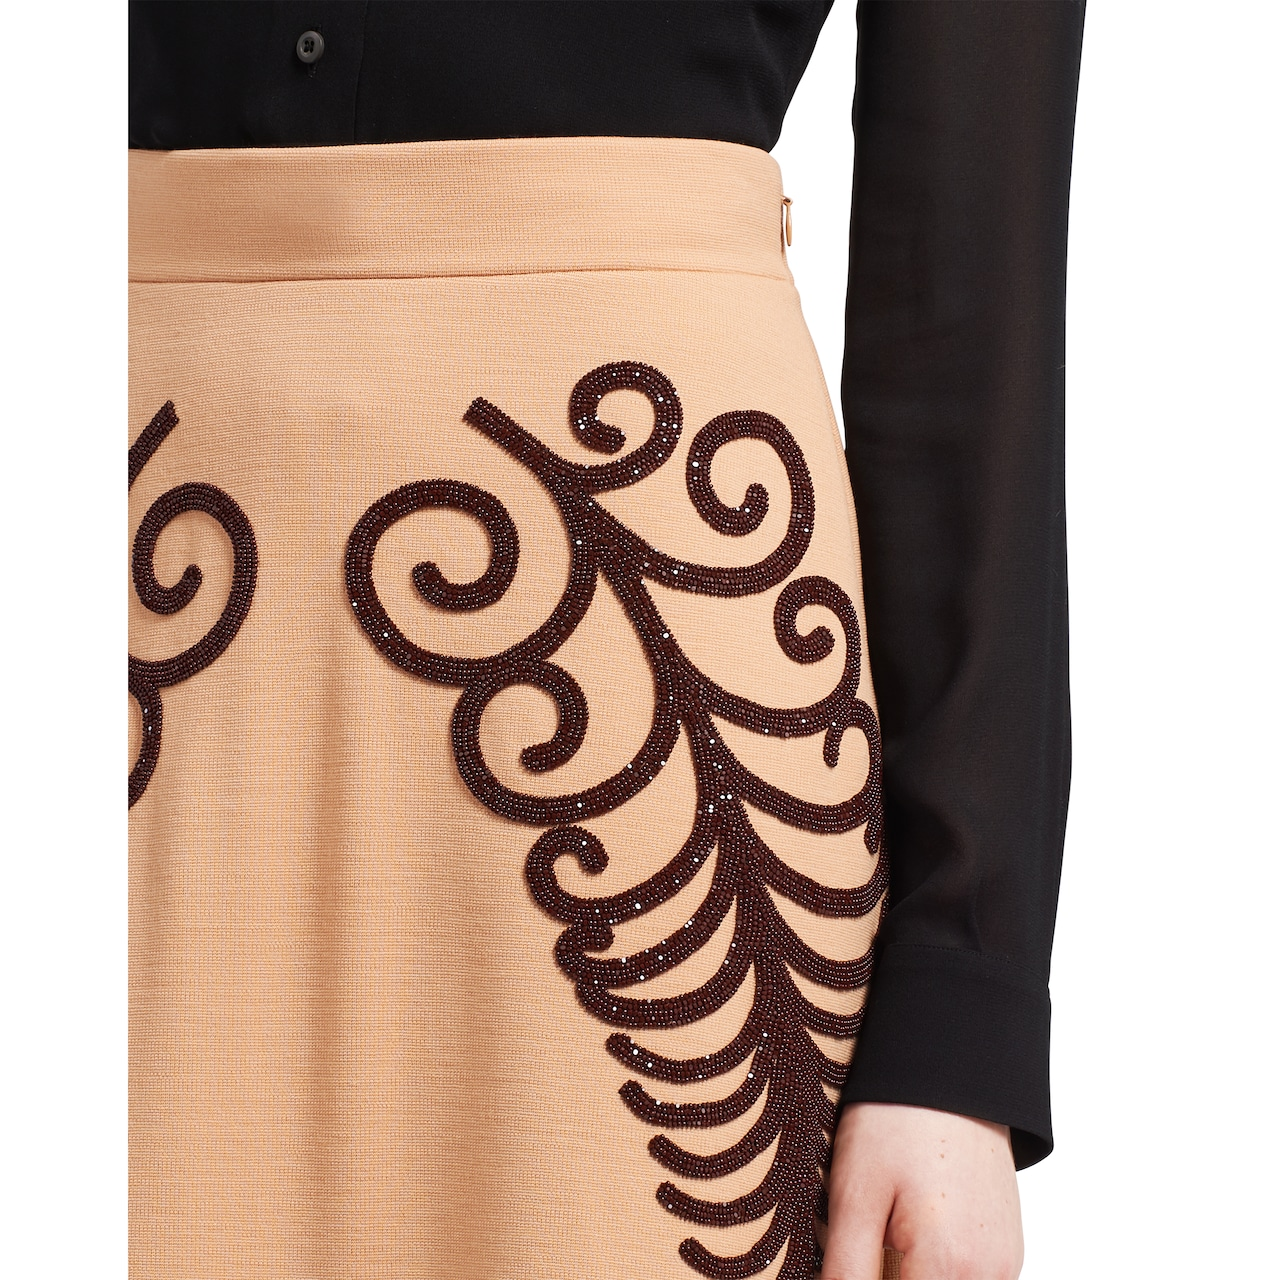 Prada Punto Stoffa knit skirt with beaded embroidery 5